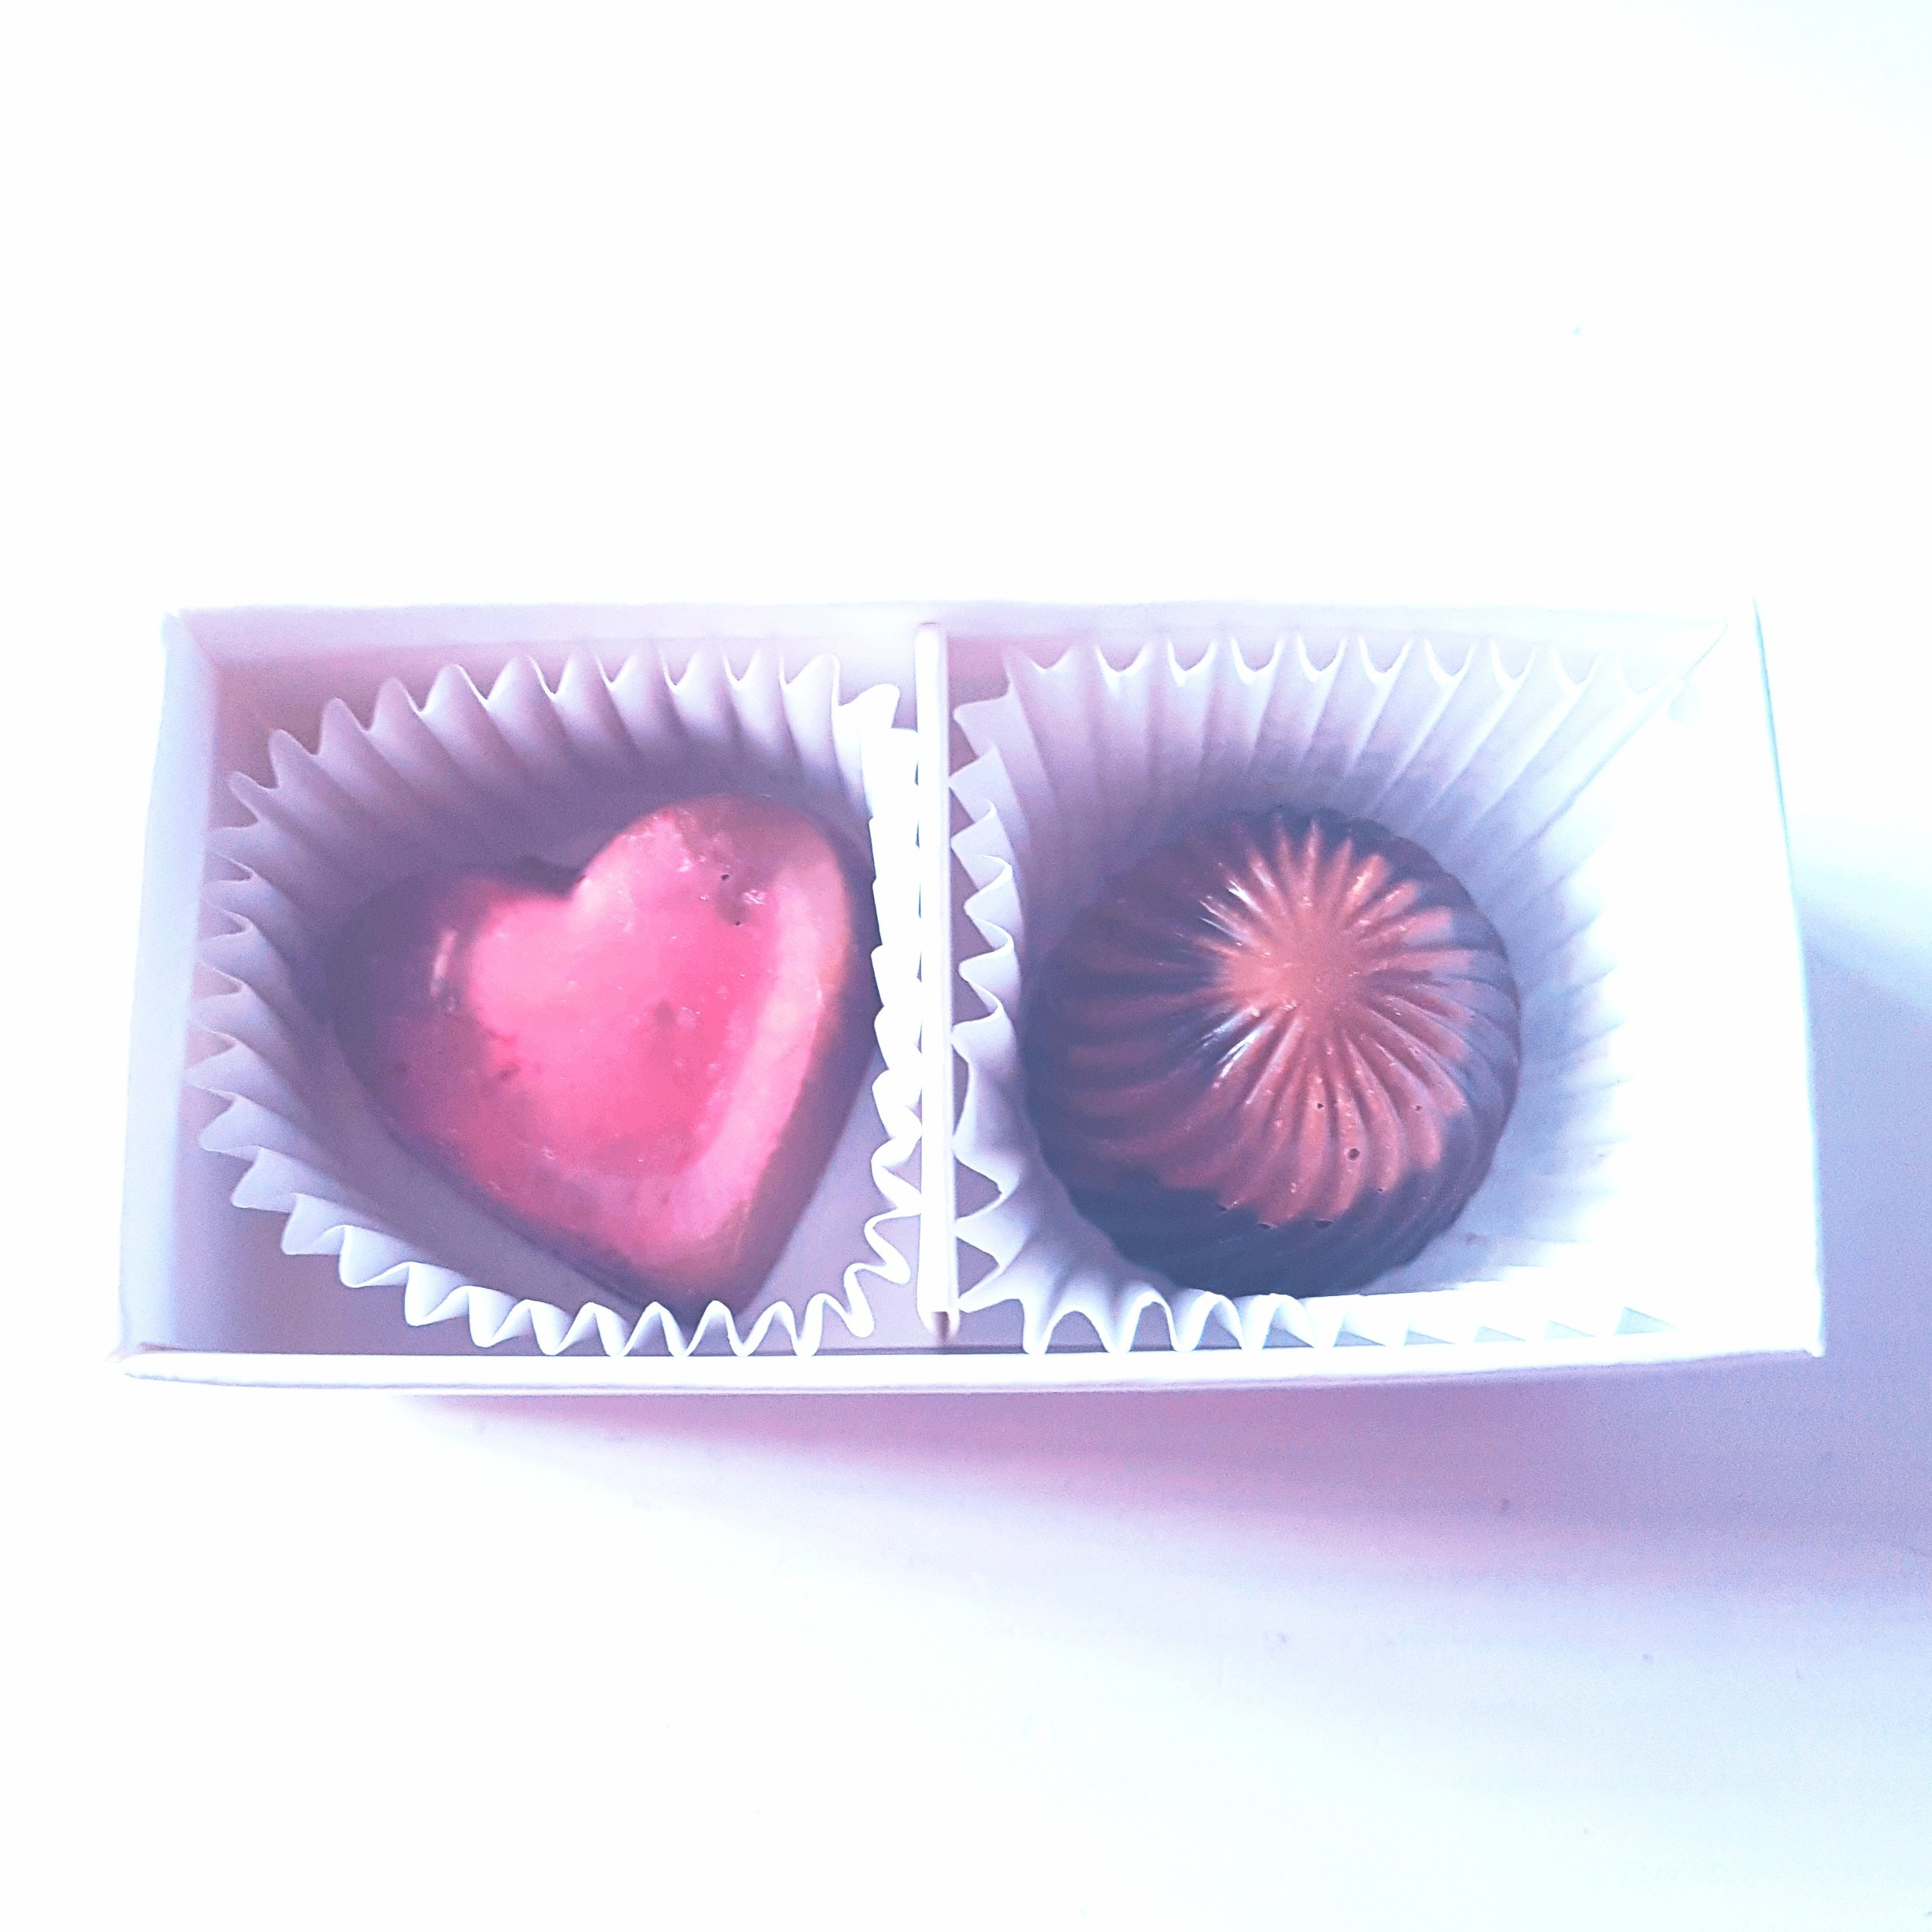 send chocolate gift in the post